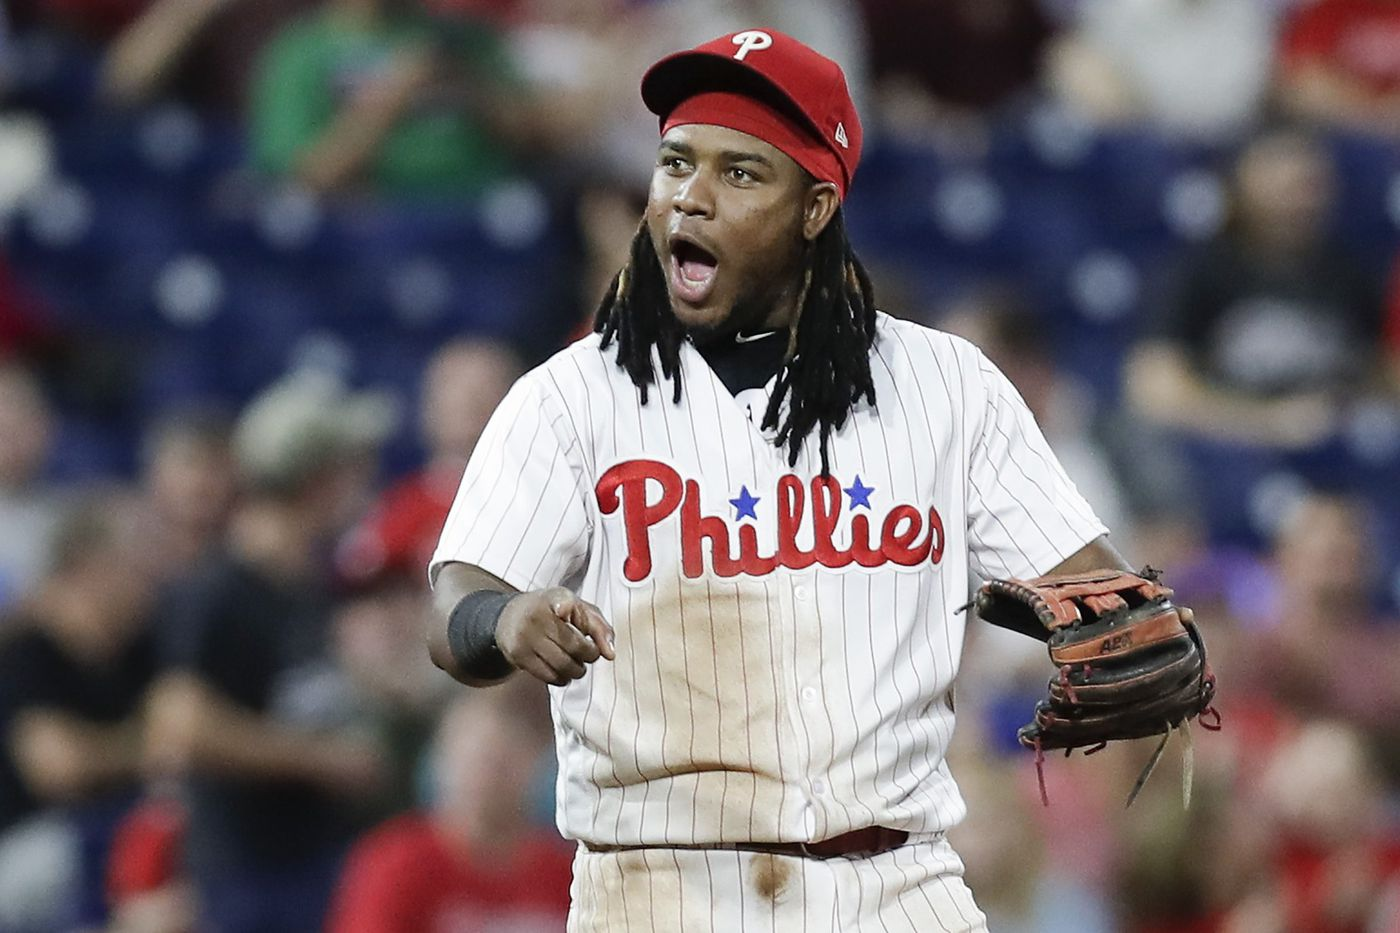 Maikel Franco cleared to play after being diagnosed with bruised right wrist